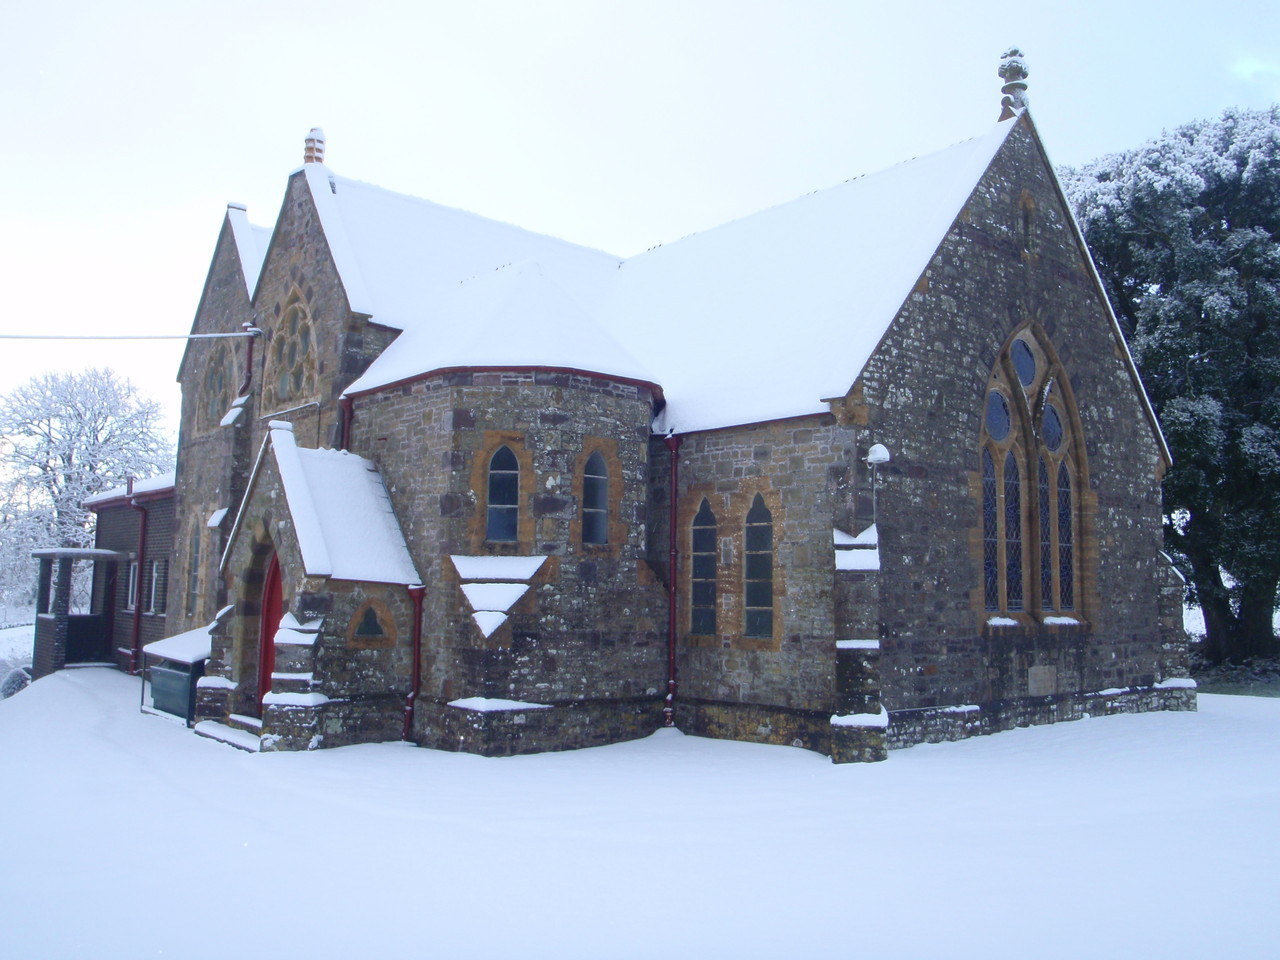 Marwood Methodist Church, Jan '10